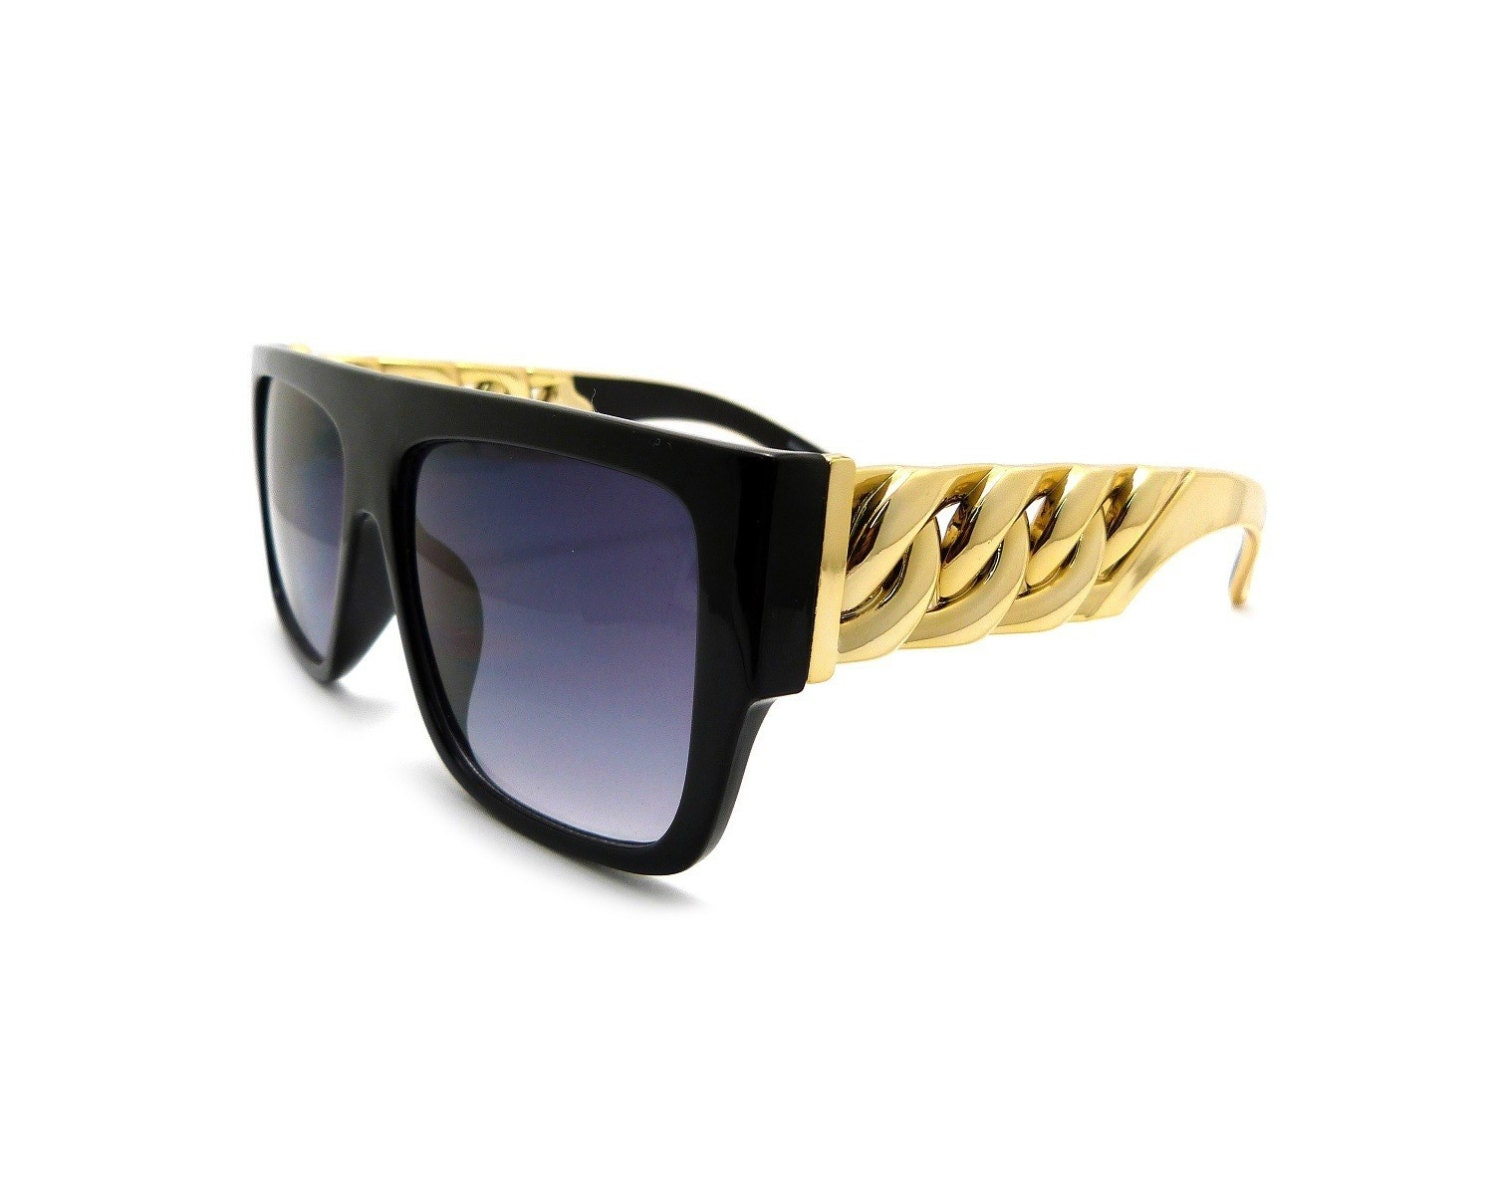 Celine Gold Frame Sunglasses : Etsy - Your place to buy and sell all things handmade ...